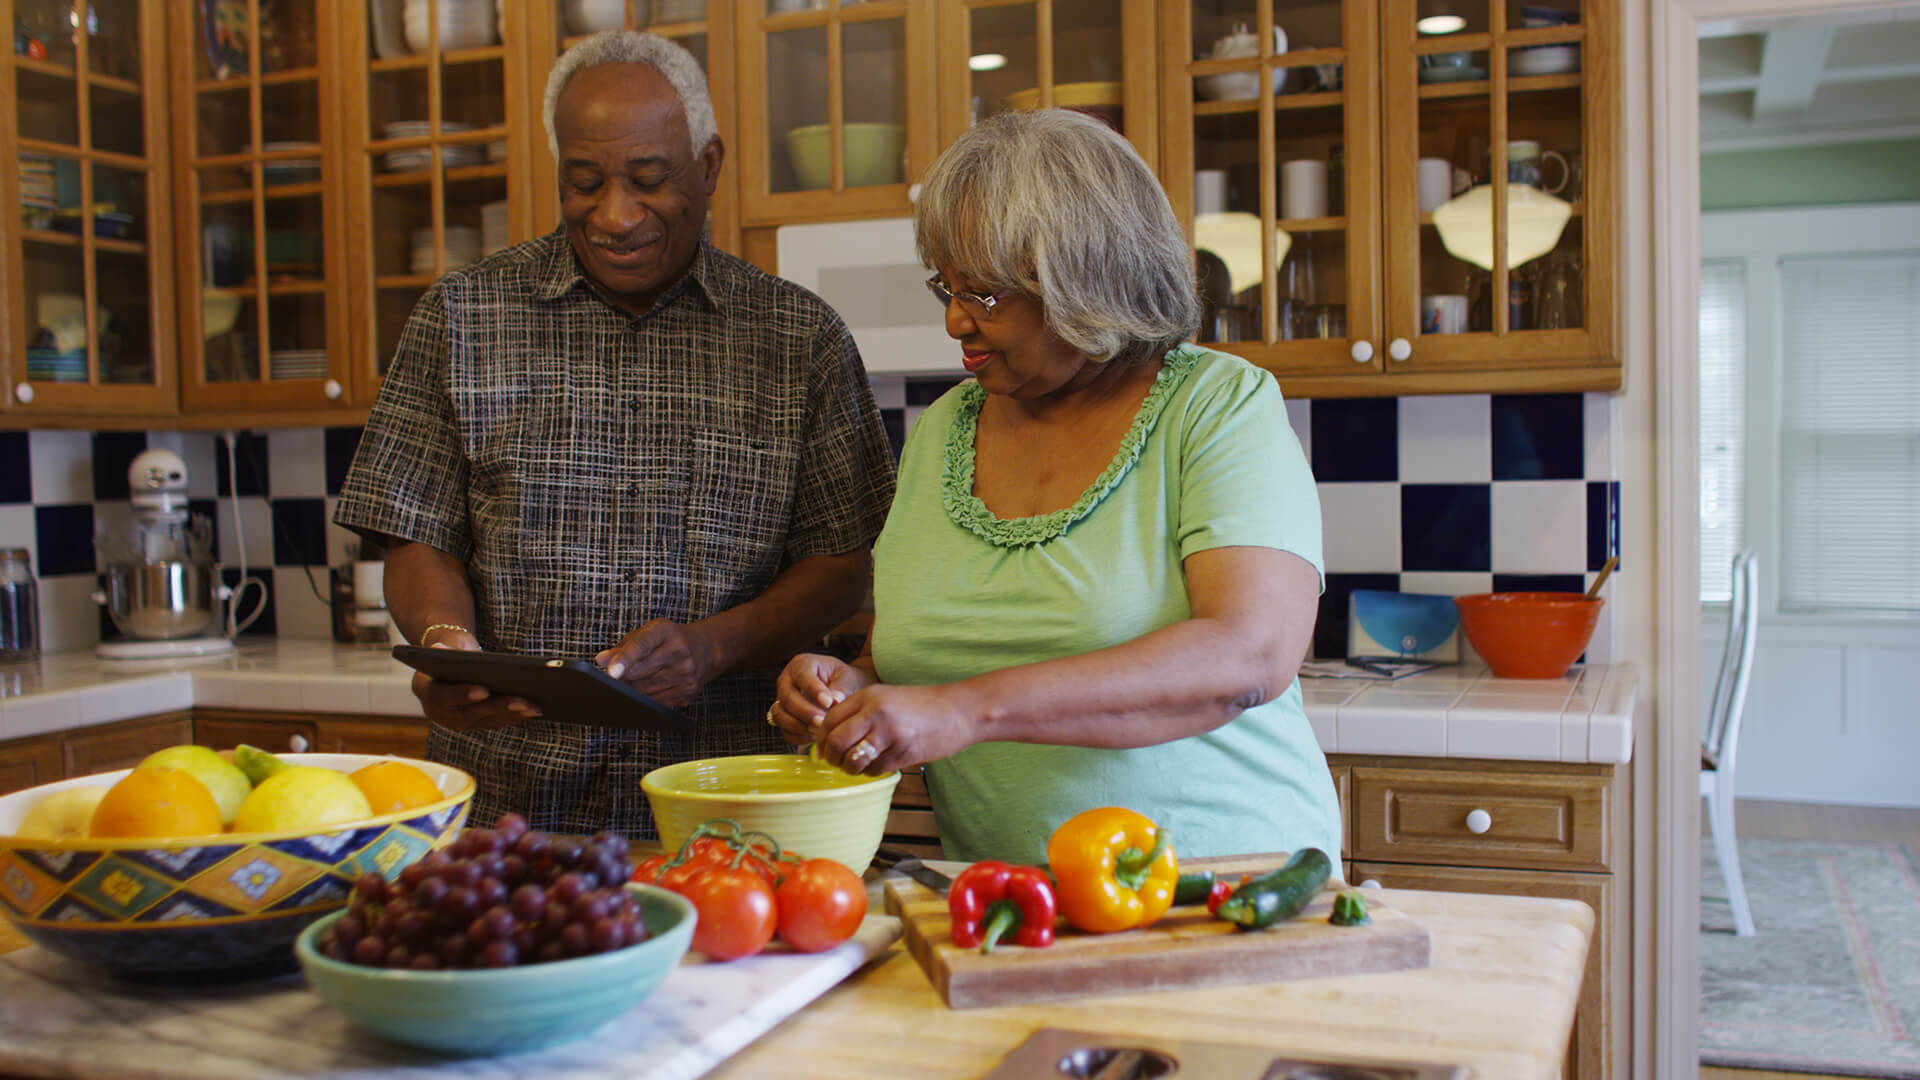 Benjamin Rose Institute on Aging is holding a virtual Summerlicious Dinner with Master Chef Mario Reyes to support the Rose Centers for Aging Well.